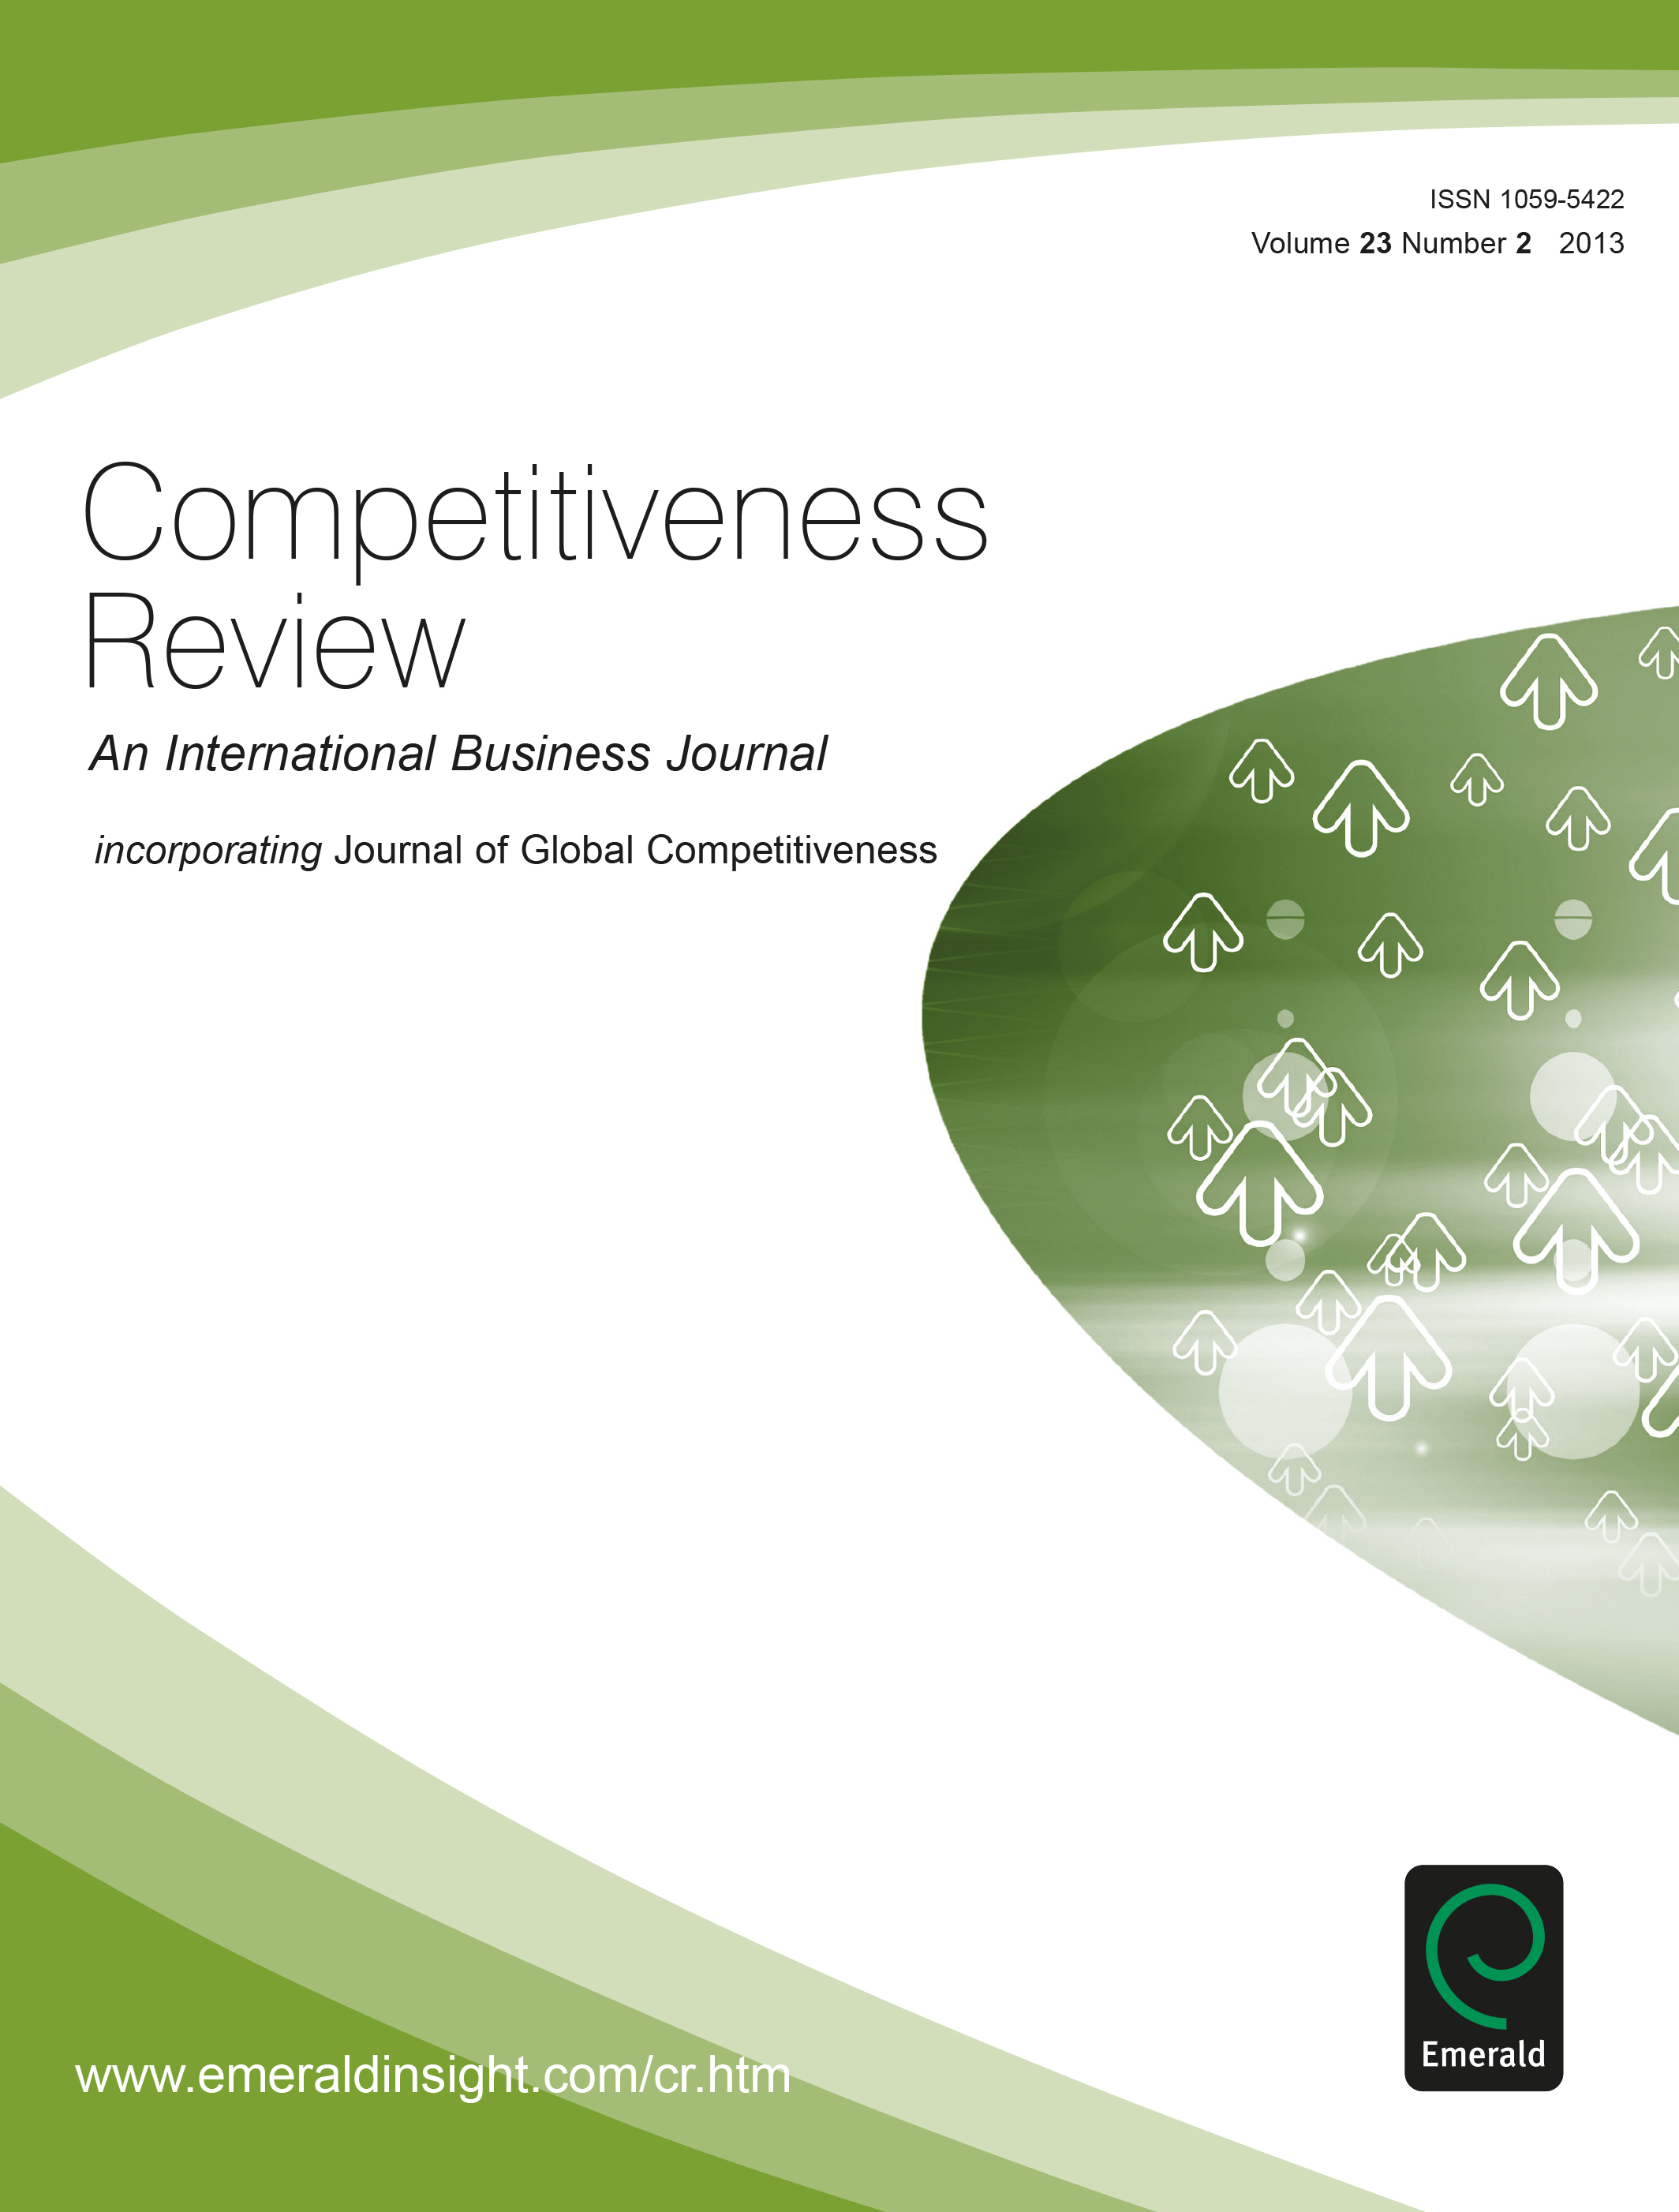 Competitiveness Review